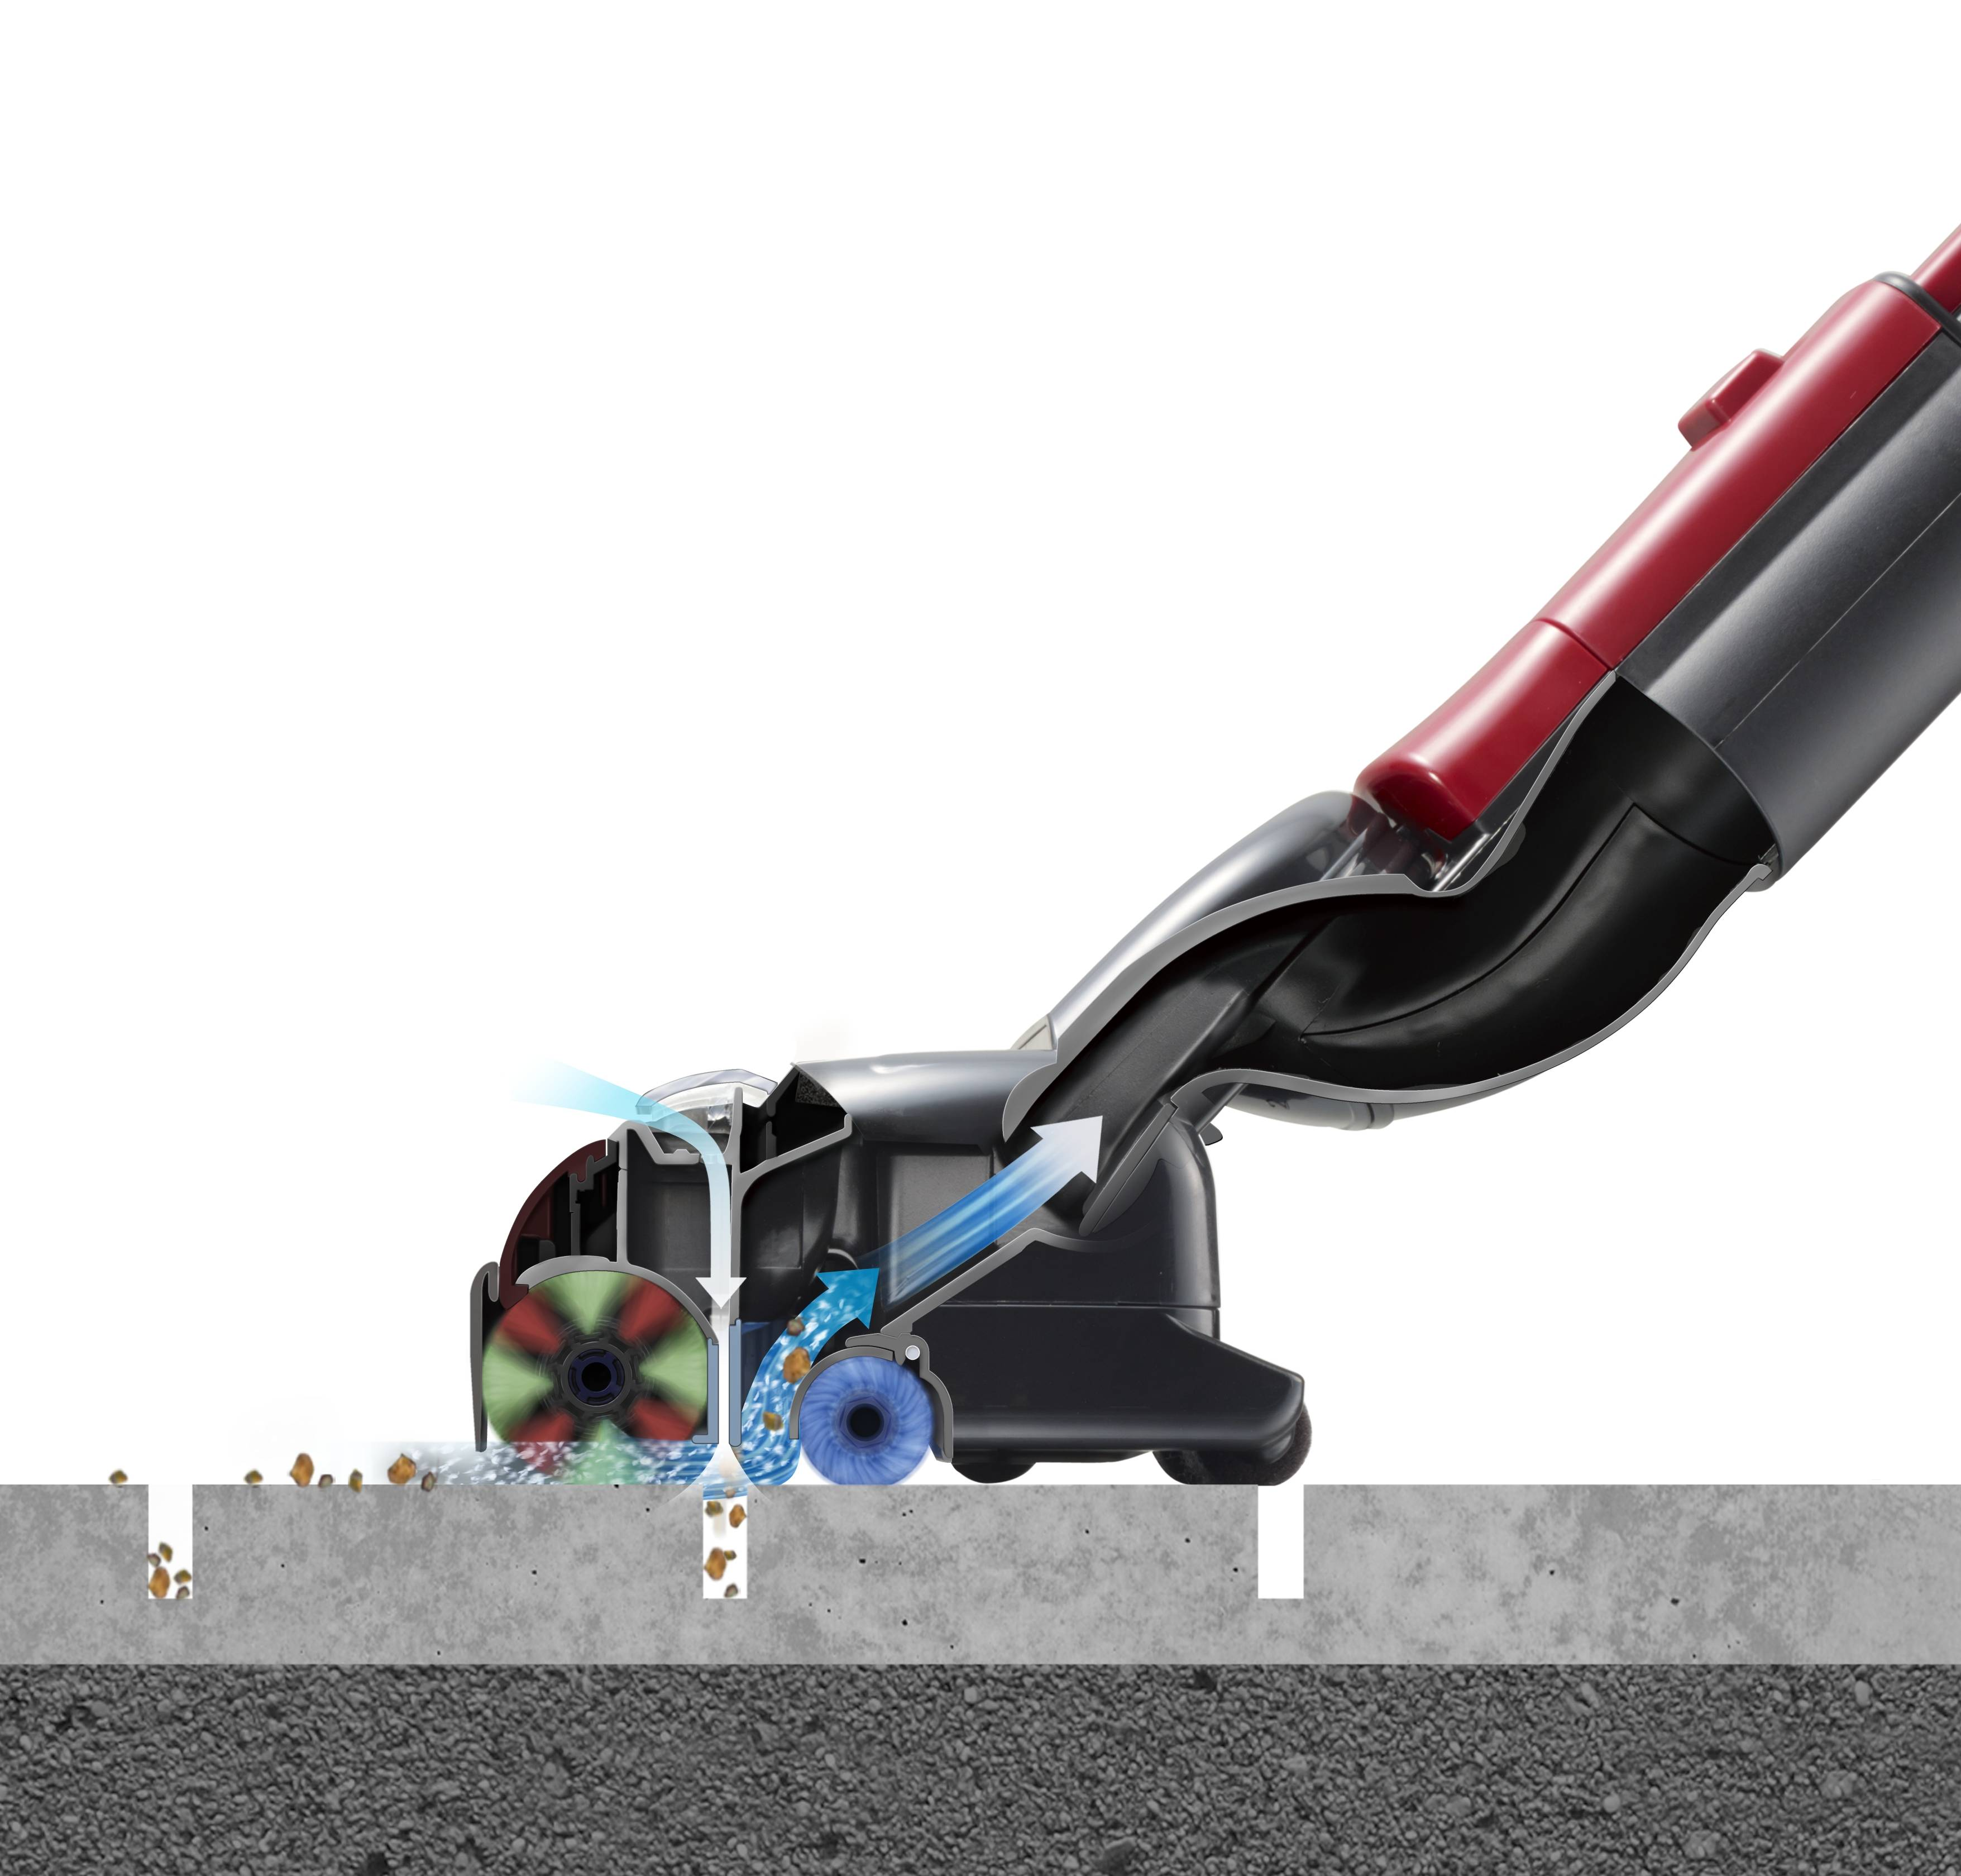 The Smart Head generates high speed airflow for powerful suction